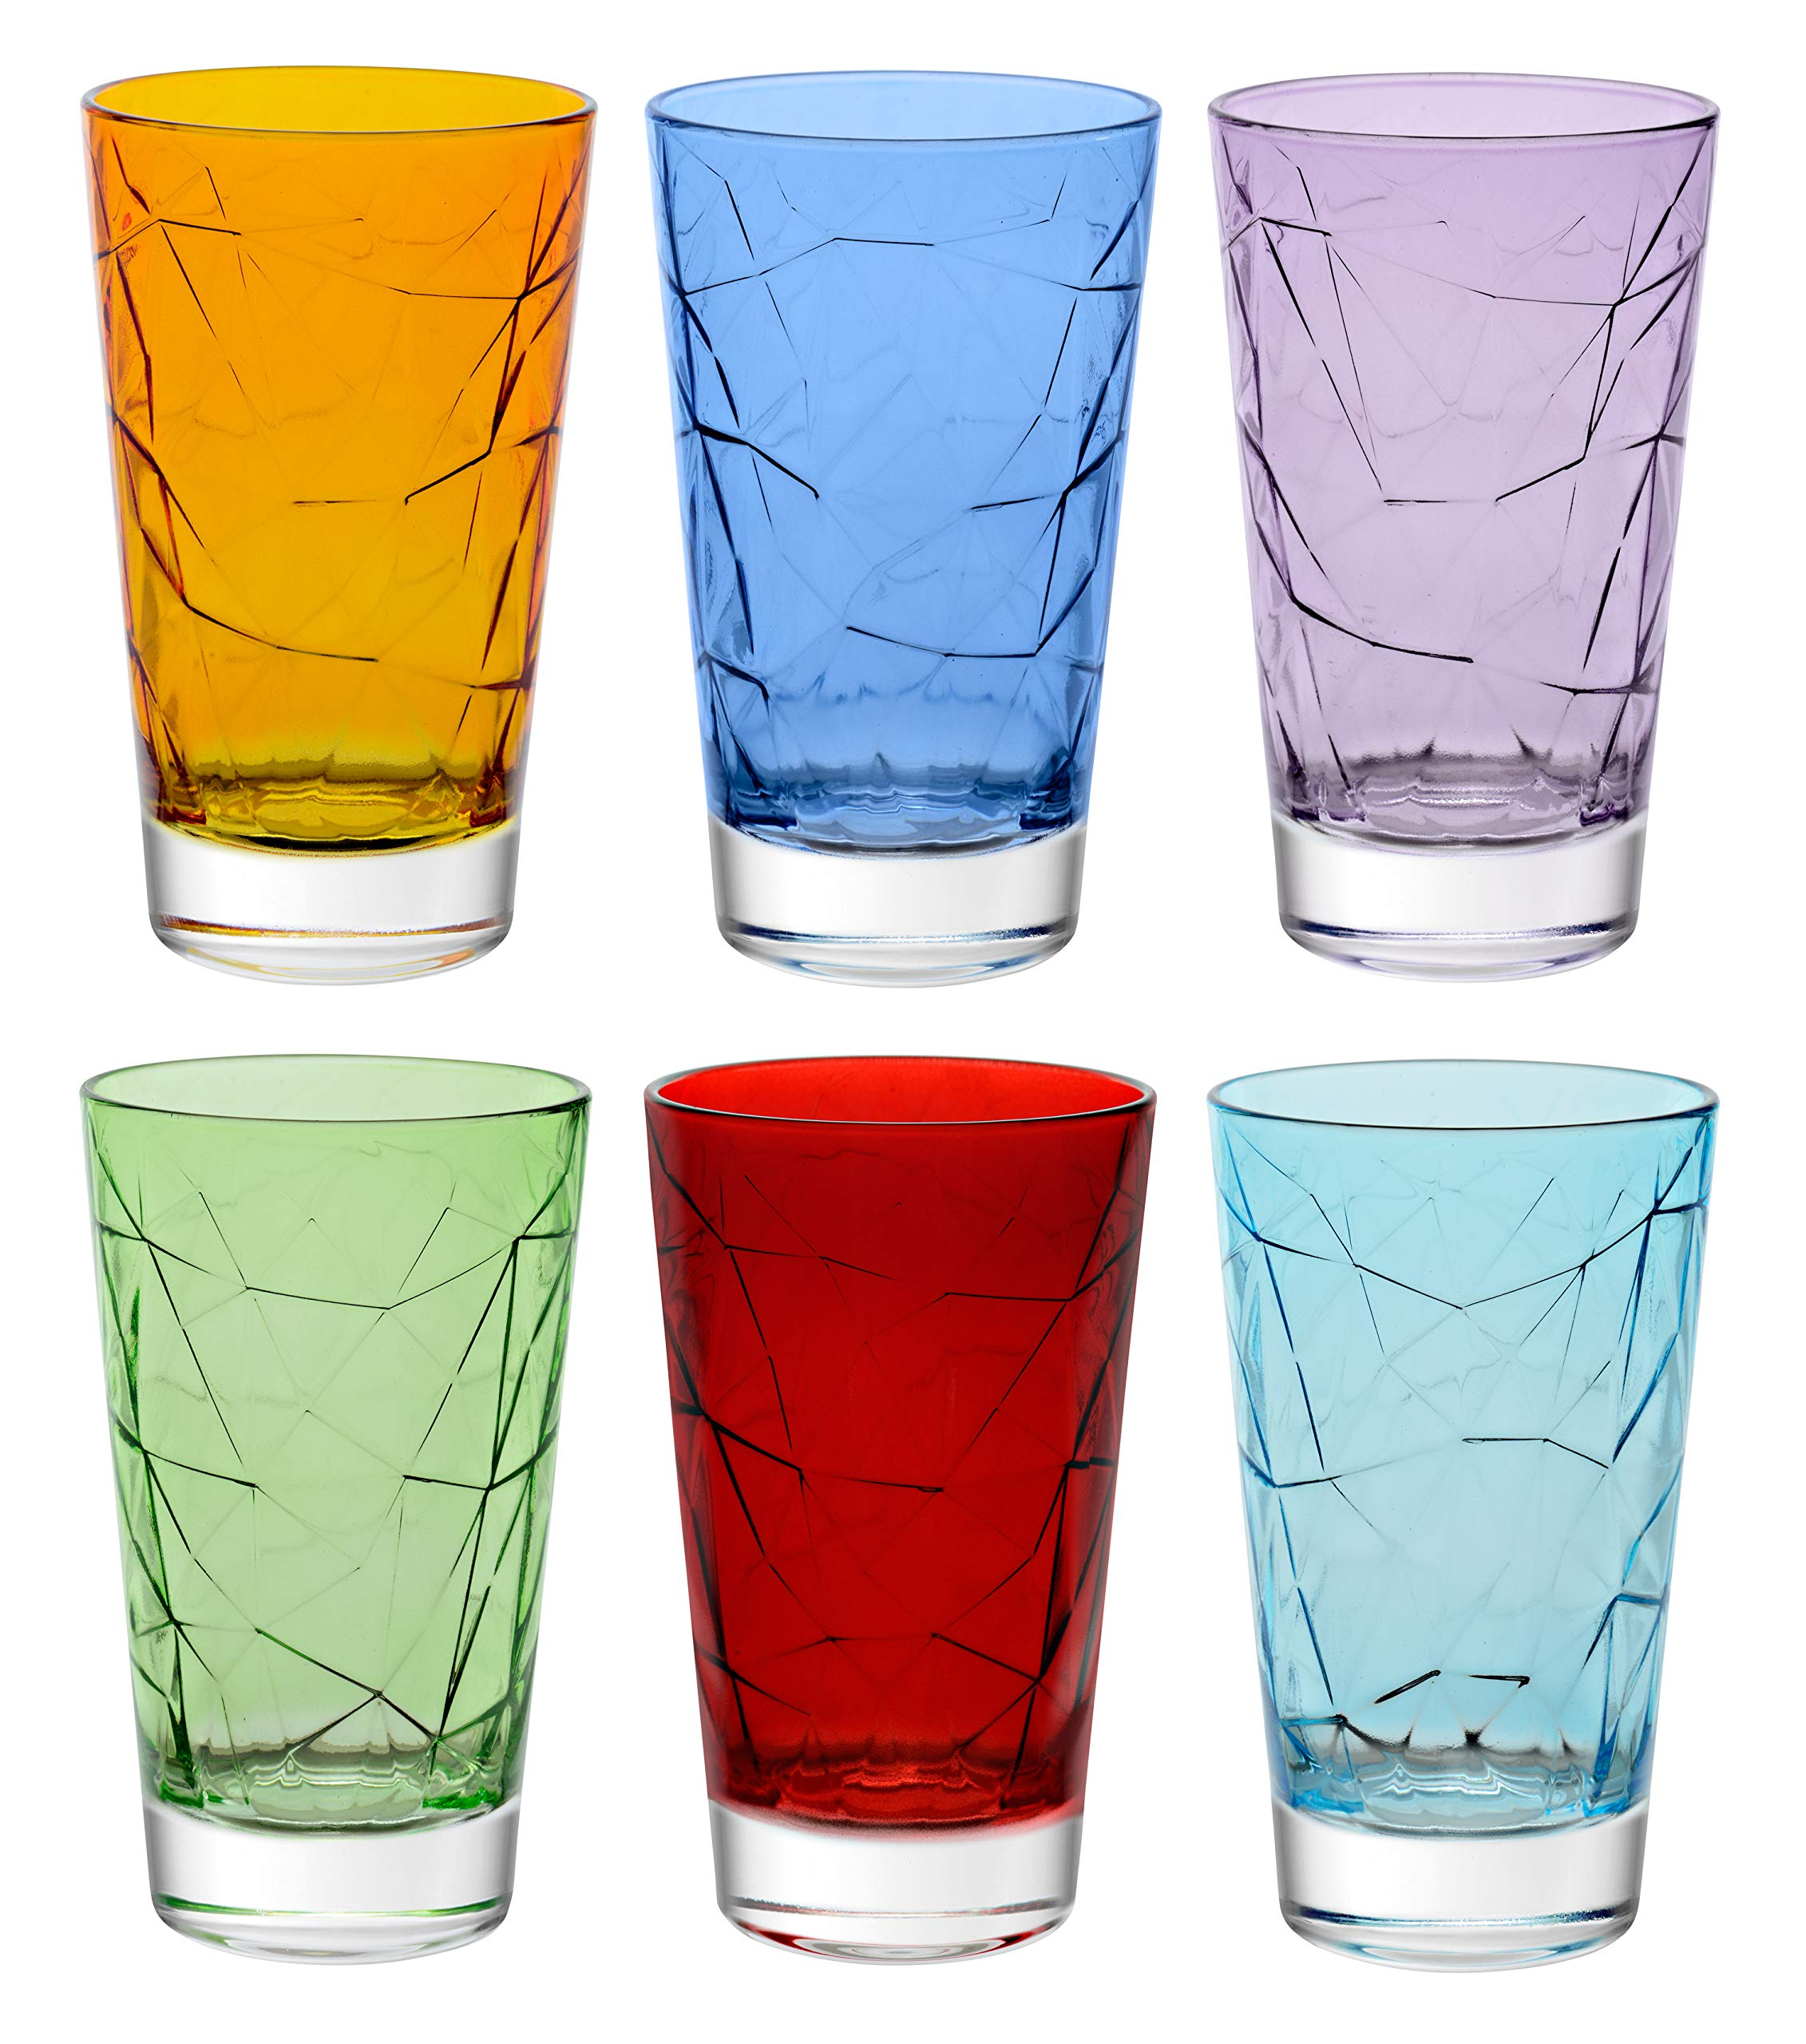 Barski - European Quality - Glass - Set of 6 - Assorted Colors - Highball - Hiball - Glasses - Tumblers - 14.2 Oz. - Made in Europe